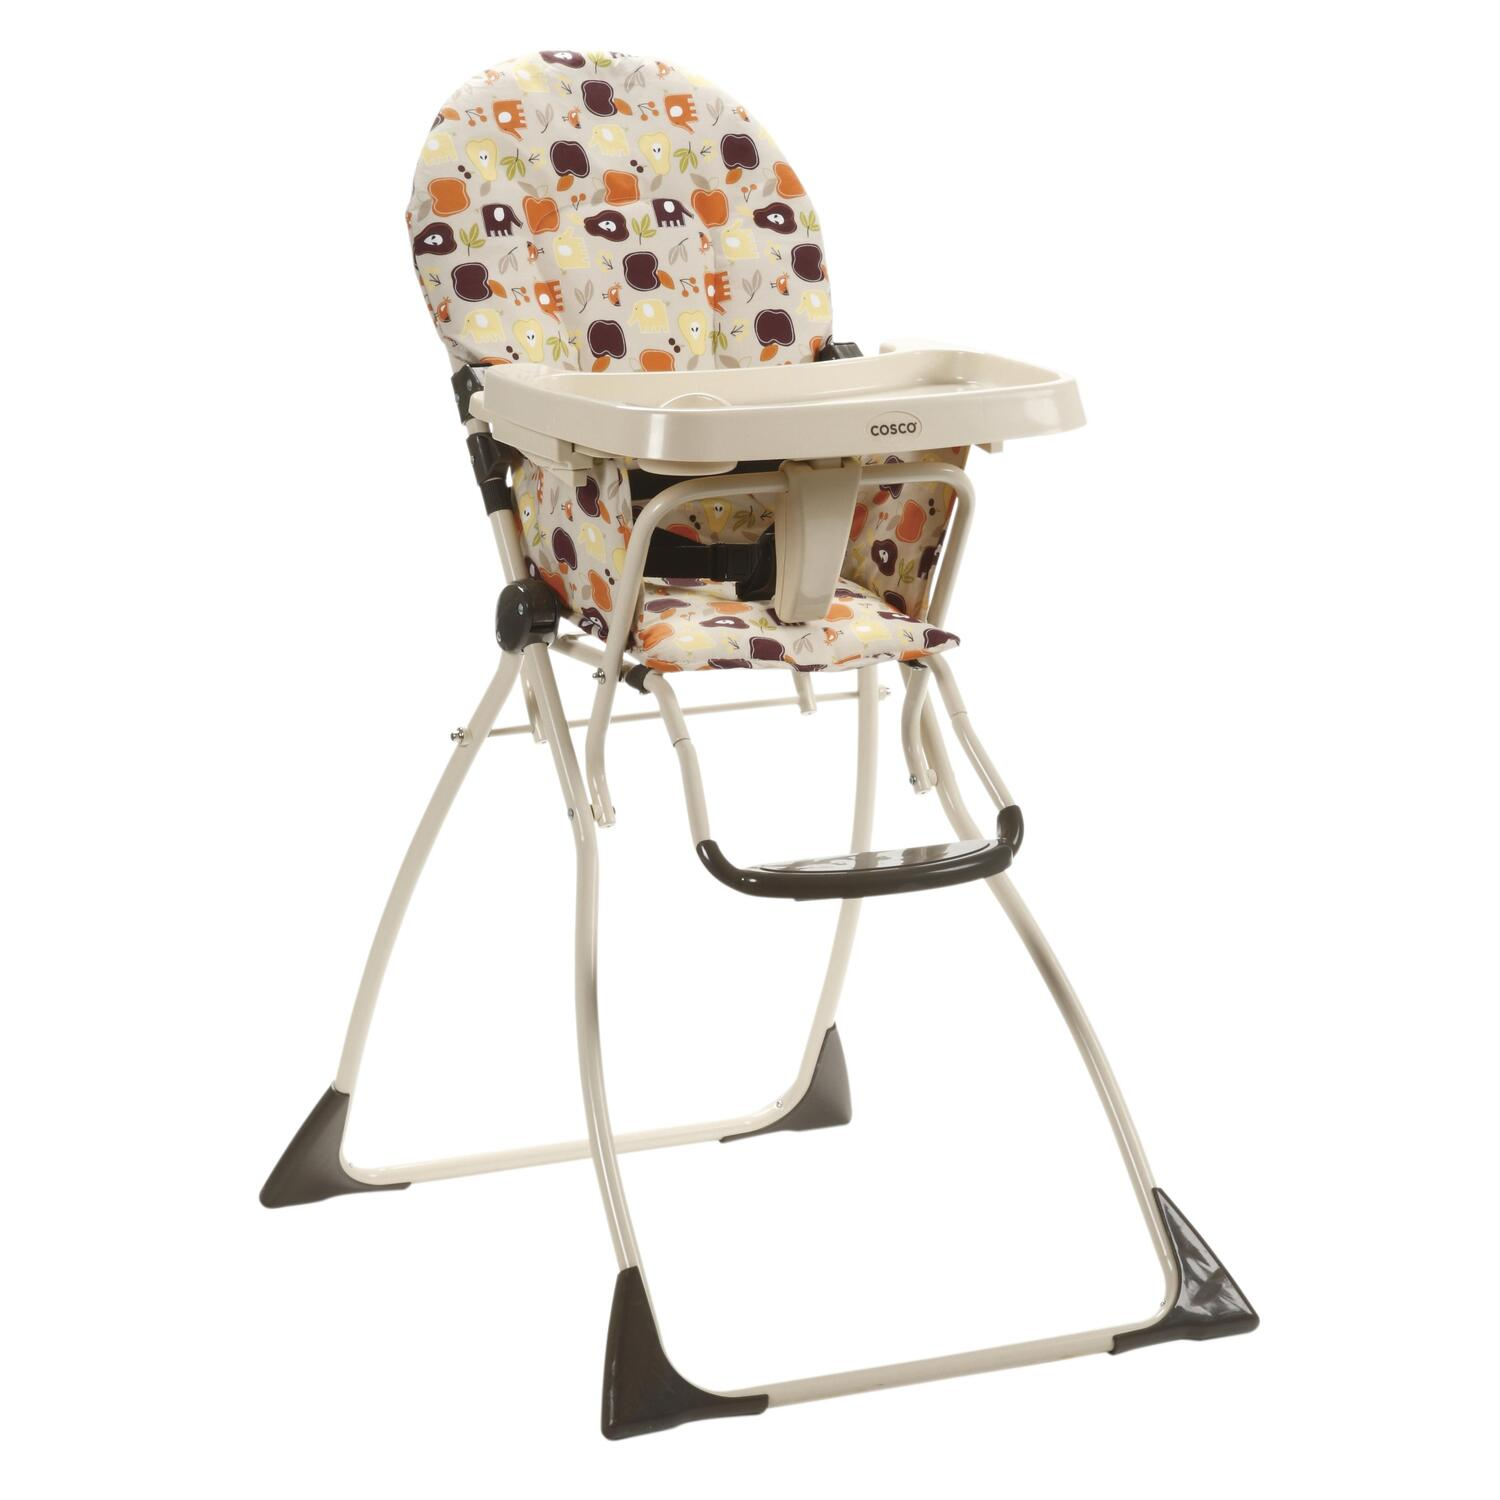 high chairs canada reviews desk chair drawing furniture home goods appliances athletic gear fitness